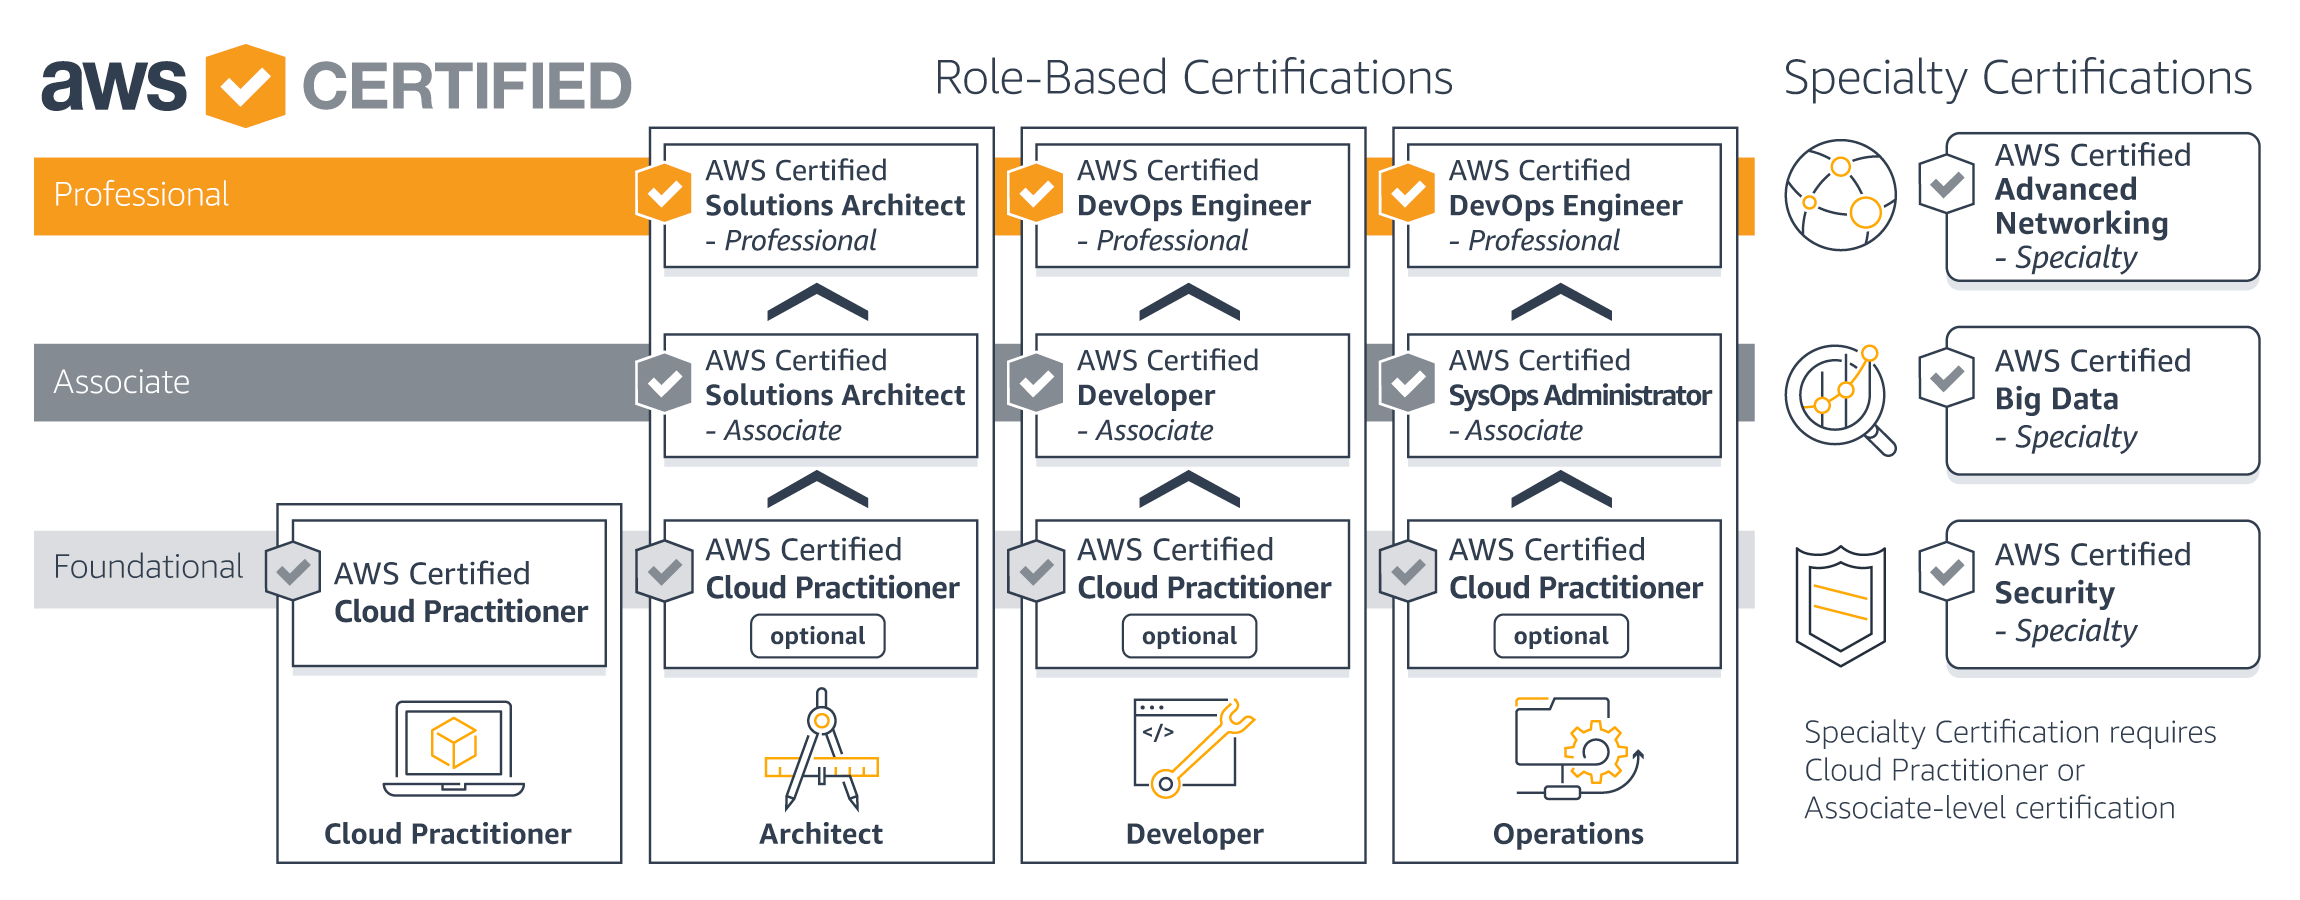 AWS Certification path for testers